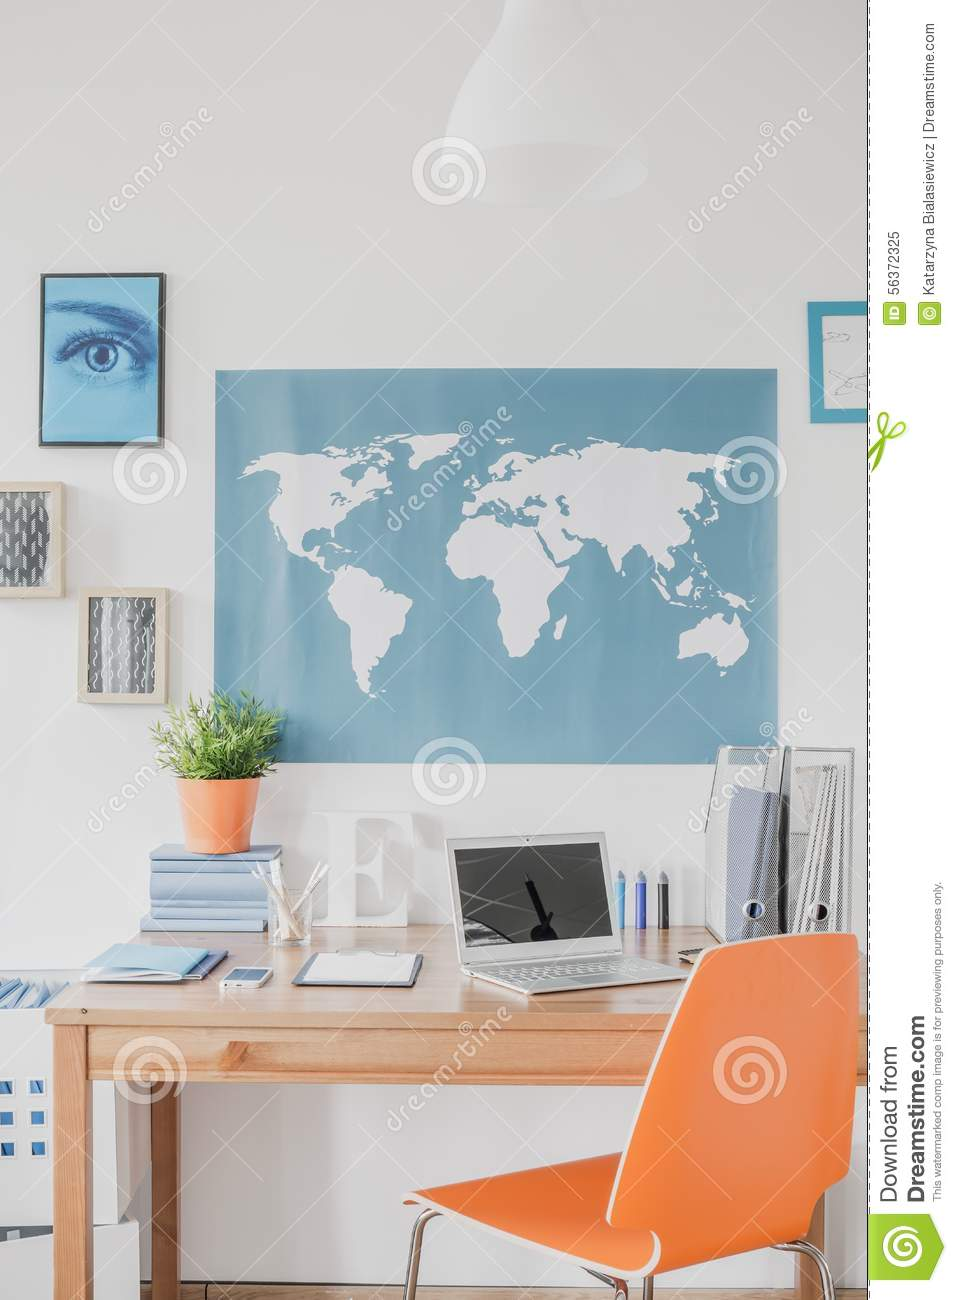 carte du monde au dessus du bureau photo stock image. Black Bedroom Furniture Sets. Home Design Ideas